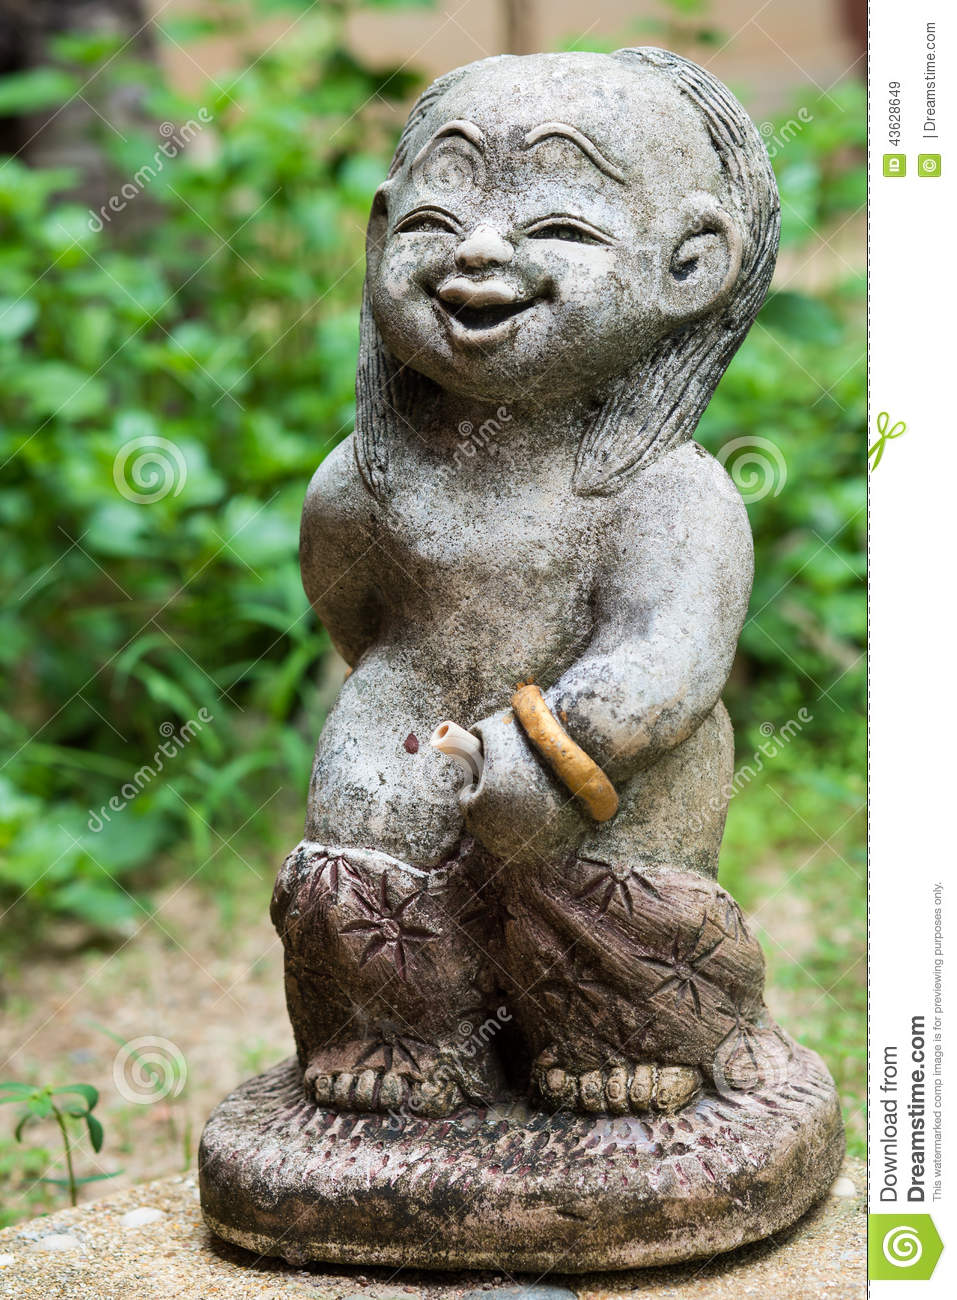 Amazing Download Little Boy Statue In A Garden Stock Image   Image Of Grass,  Sculpture: